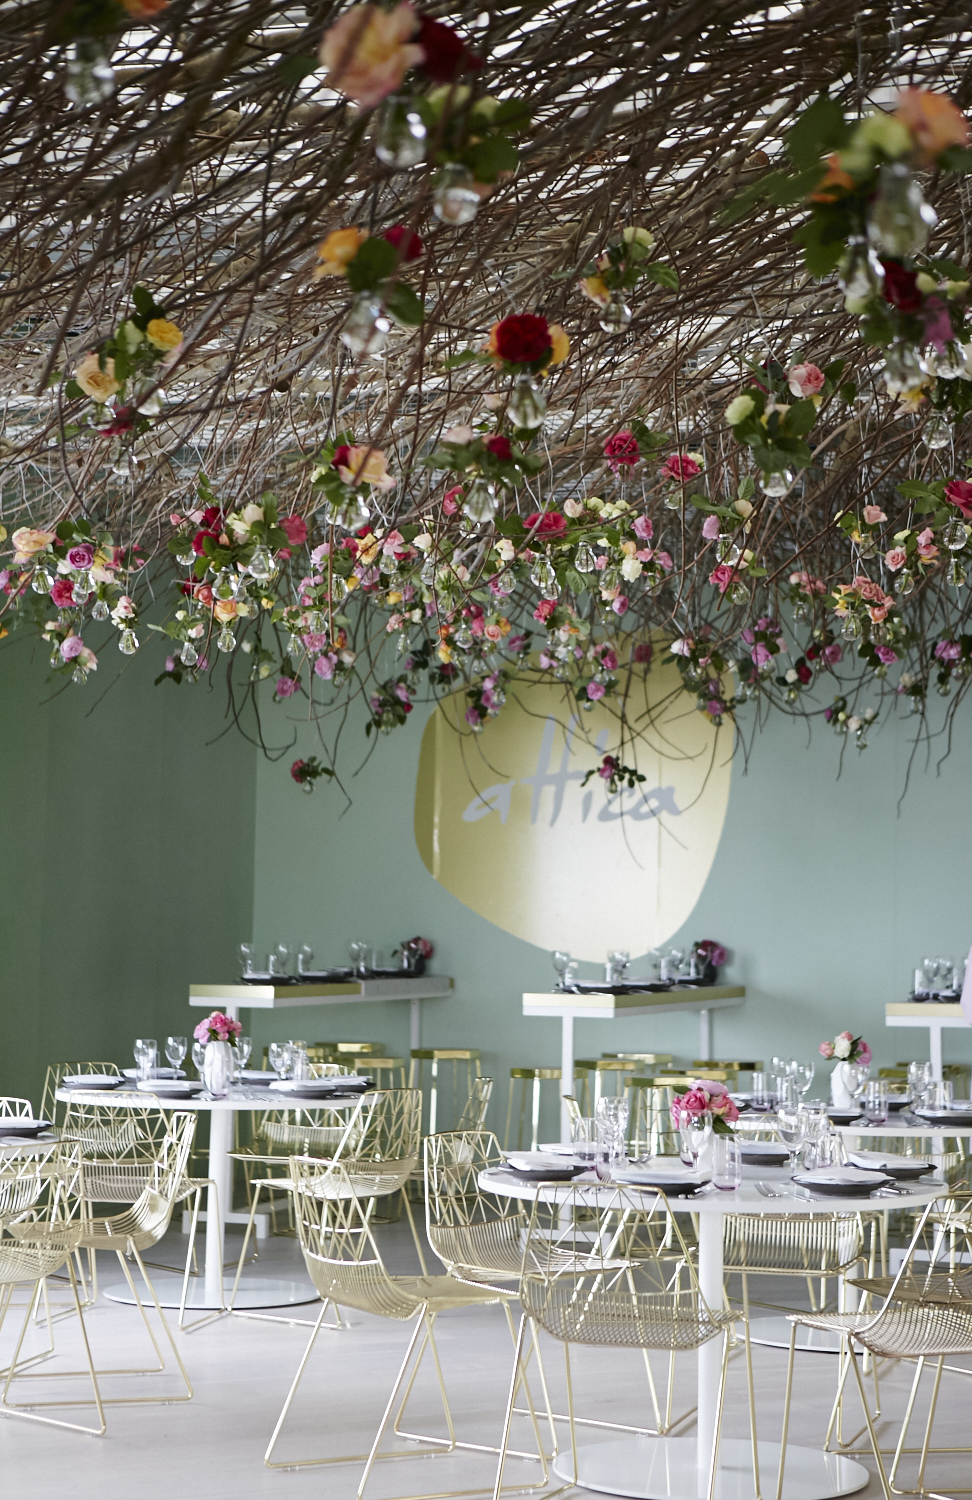 Detail Collective | Lifestyle | Melbourne Cup Carnival Marquees 2014 | Lexus Marquee | Image: Chloe Paul via Lexus